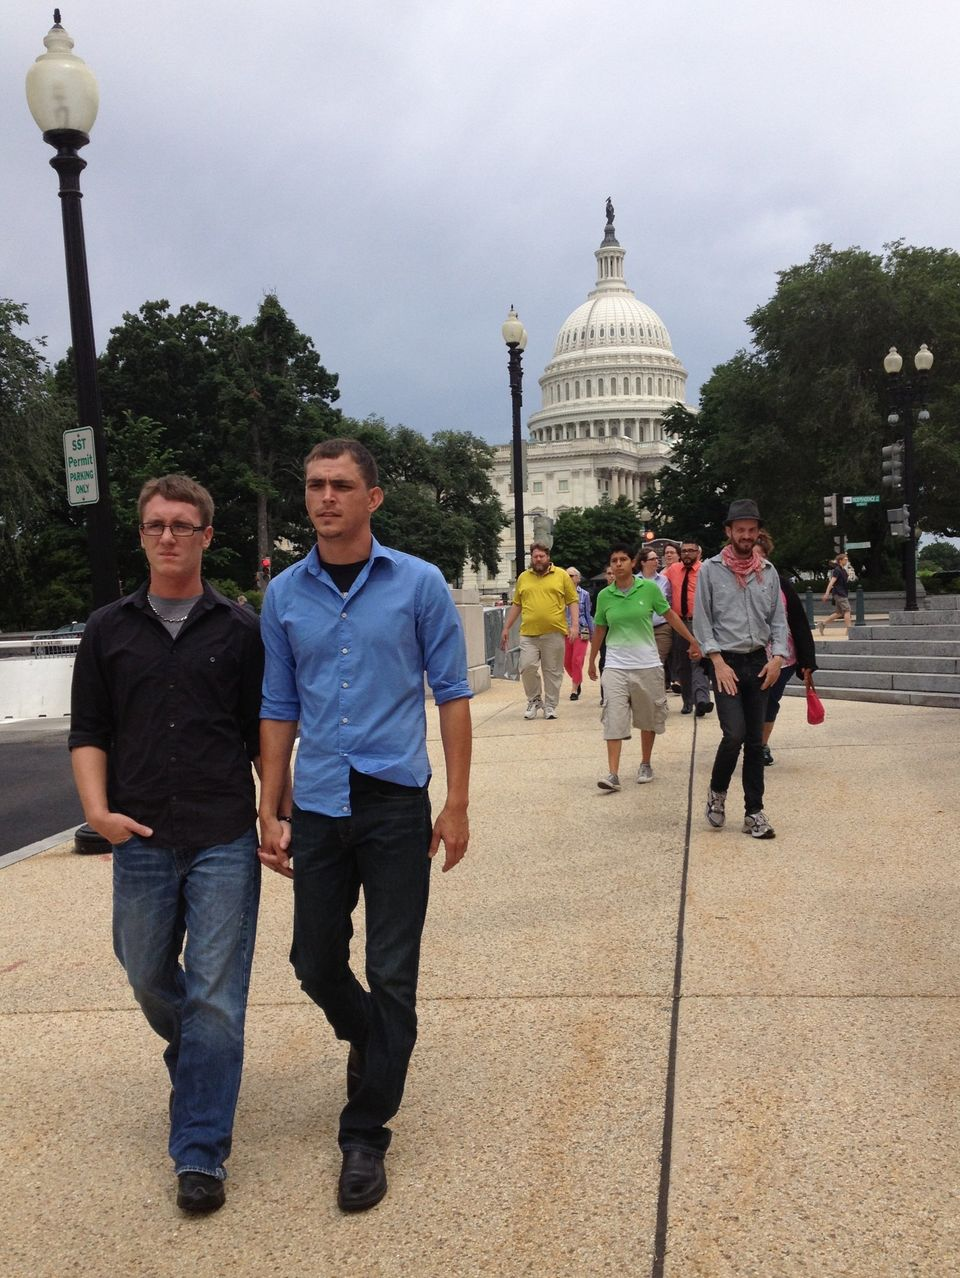 Corey Phillips, 23, and Sean Watkins, 29, were two of the GetEQUAL activists who were arrested on Thursday, June 13, 2013, at